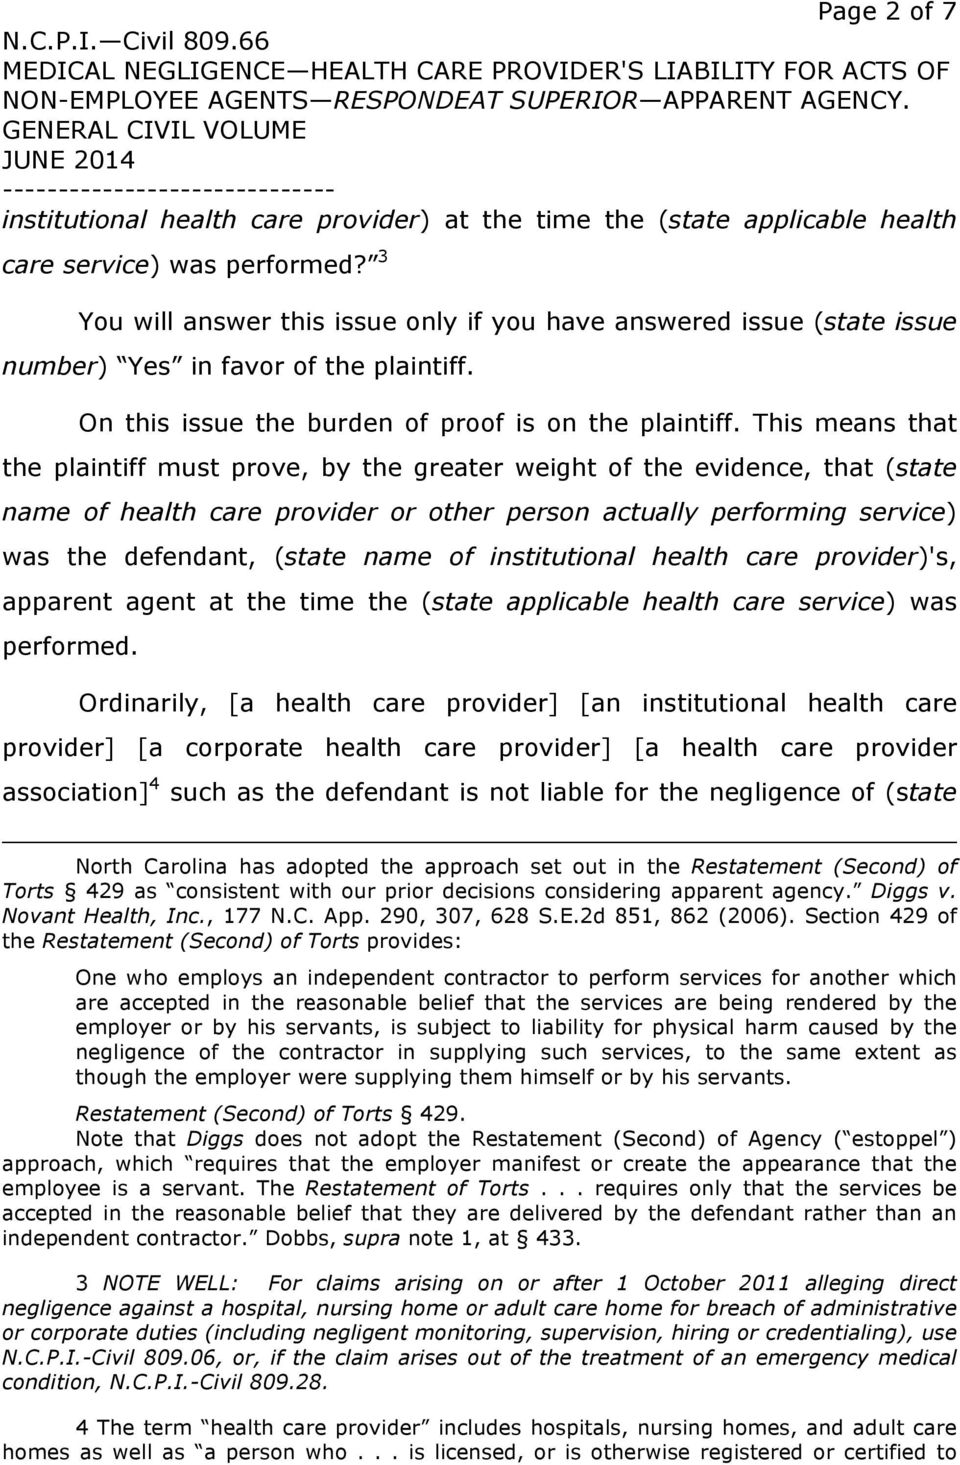 This means that the plaintiff must prove, by the greater weight of the evidence, that (state name of health care provider or other person actually performing service) was the defendant, (state name